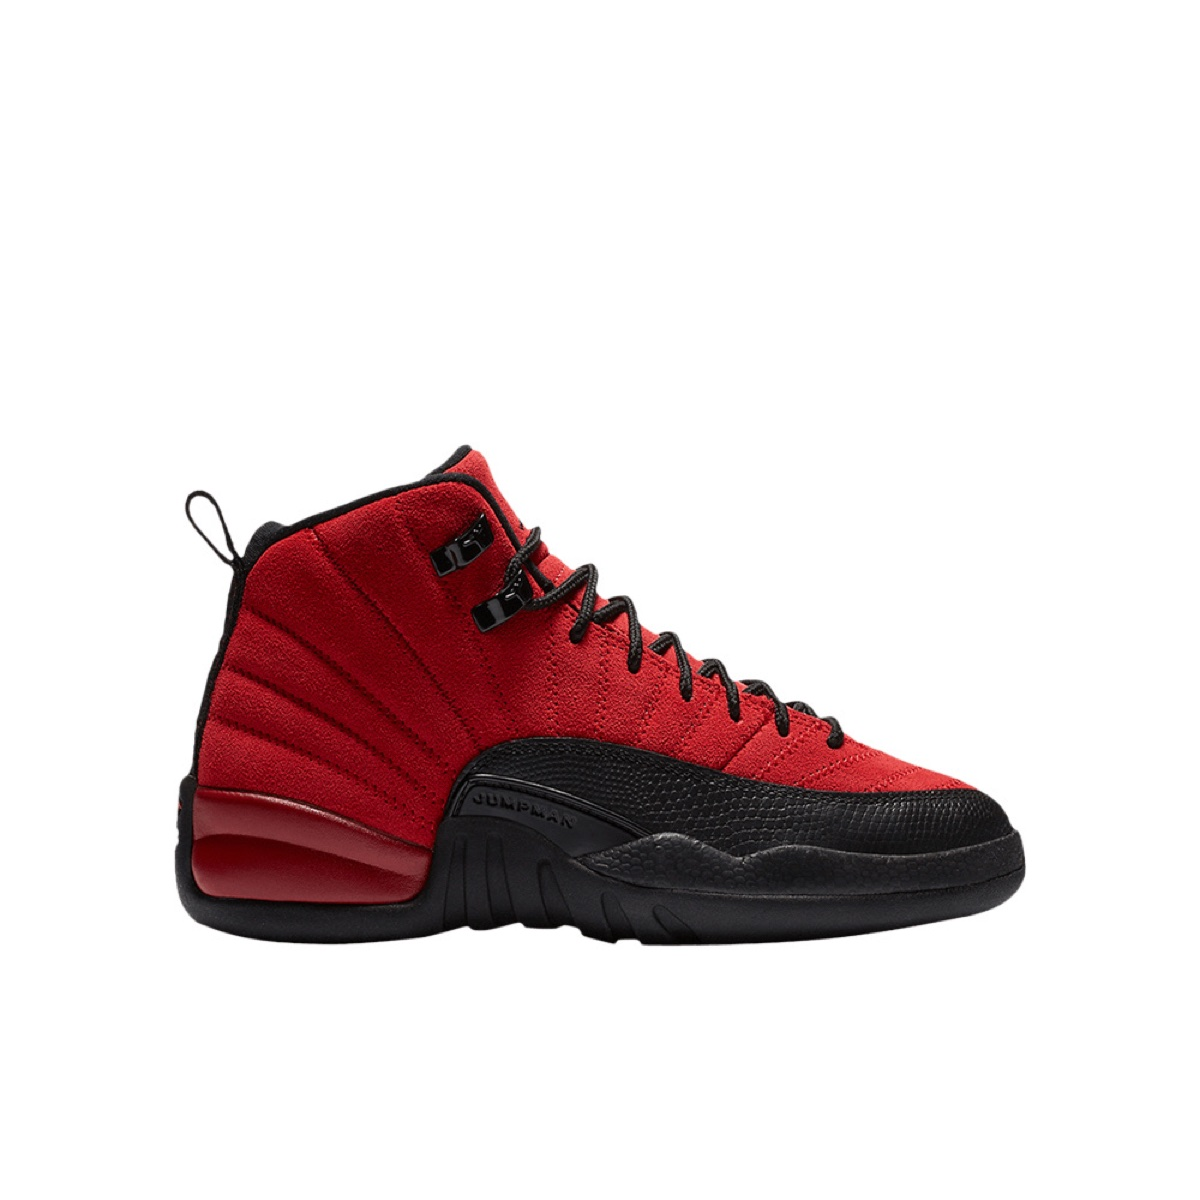 Nike Air Jordan 12 Retro GS Reverse Flu Game